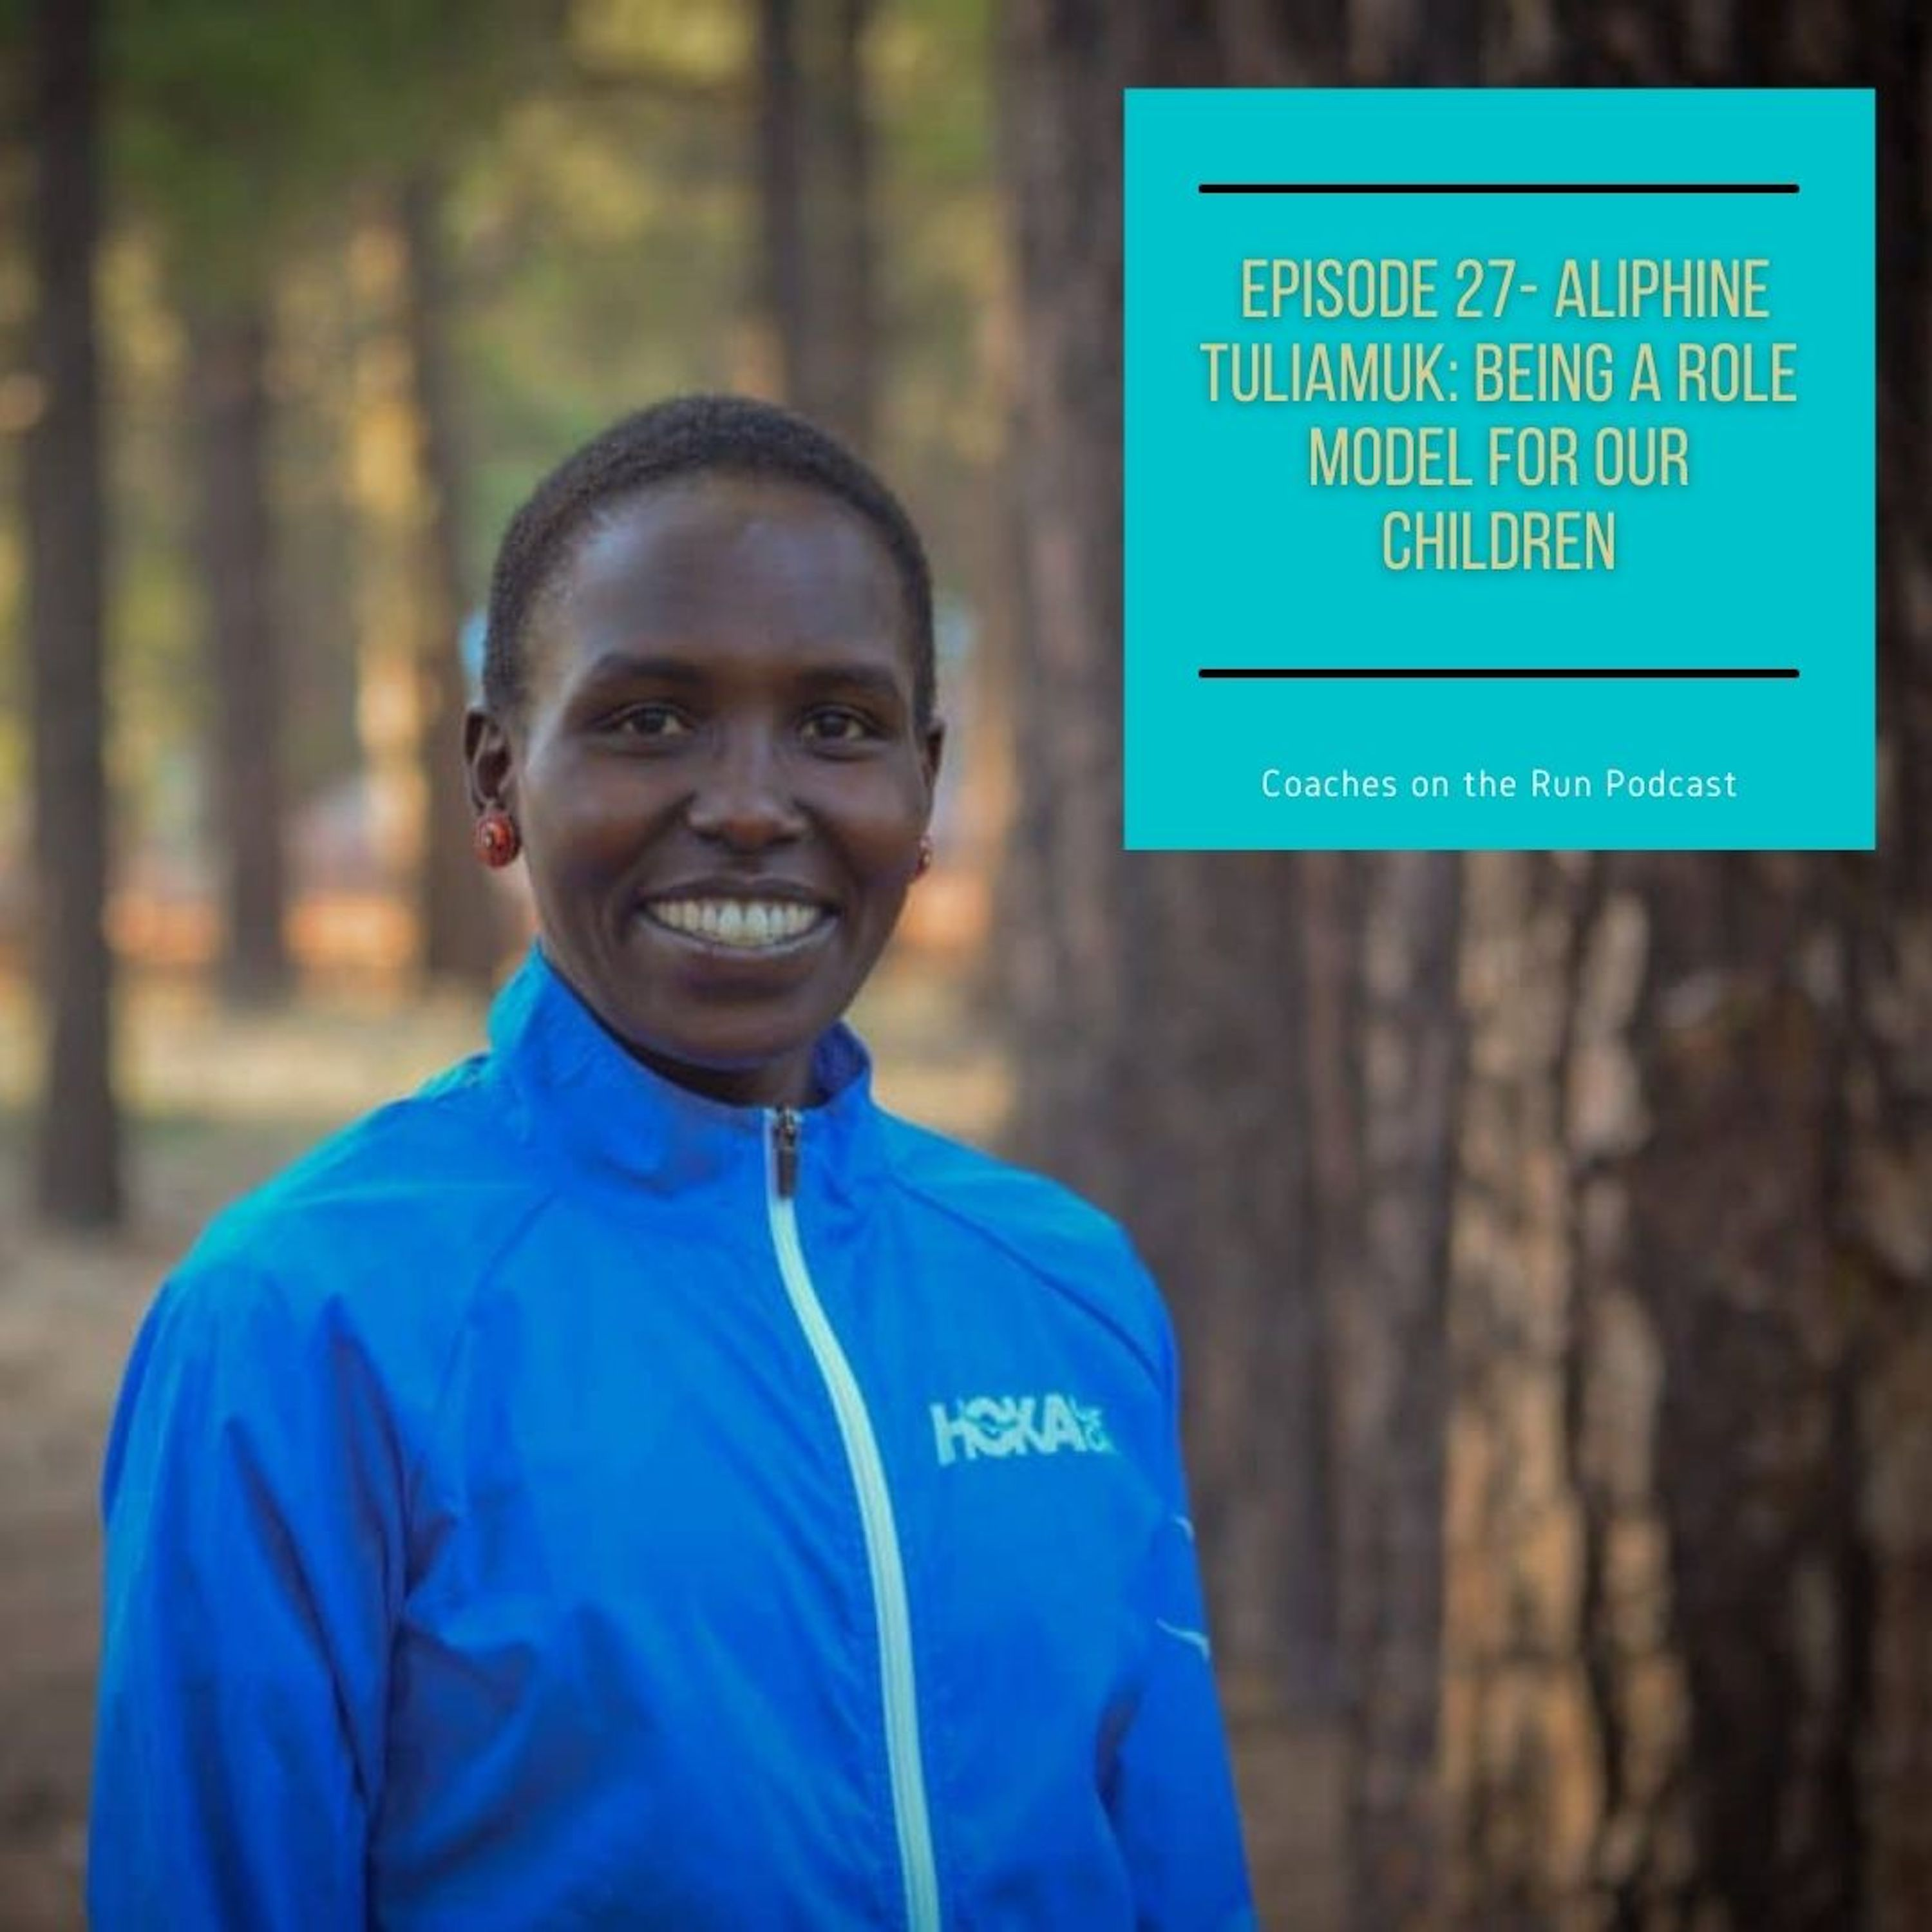 Aliphine Tuliamuk: Being A Role Model For Our Children